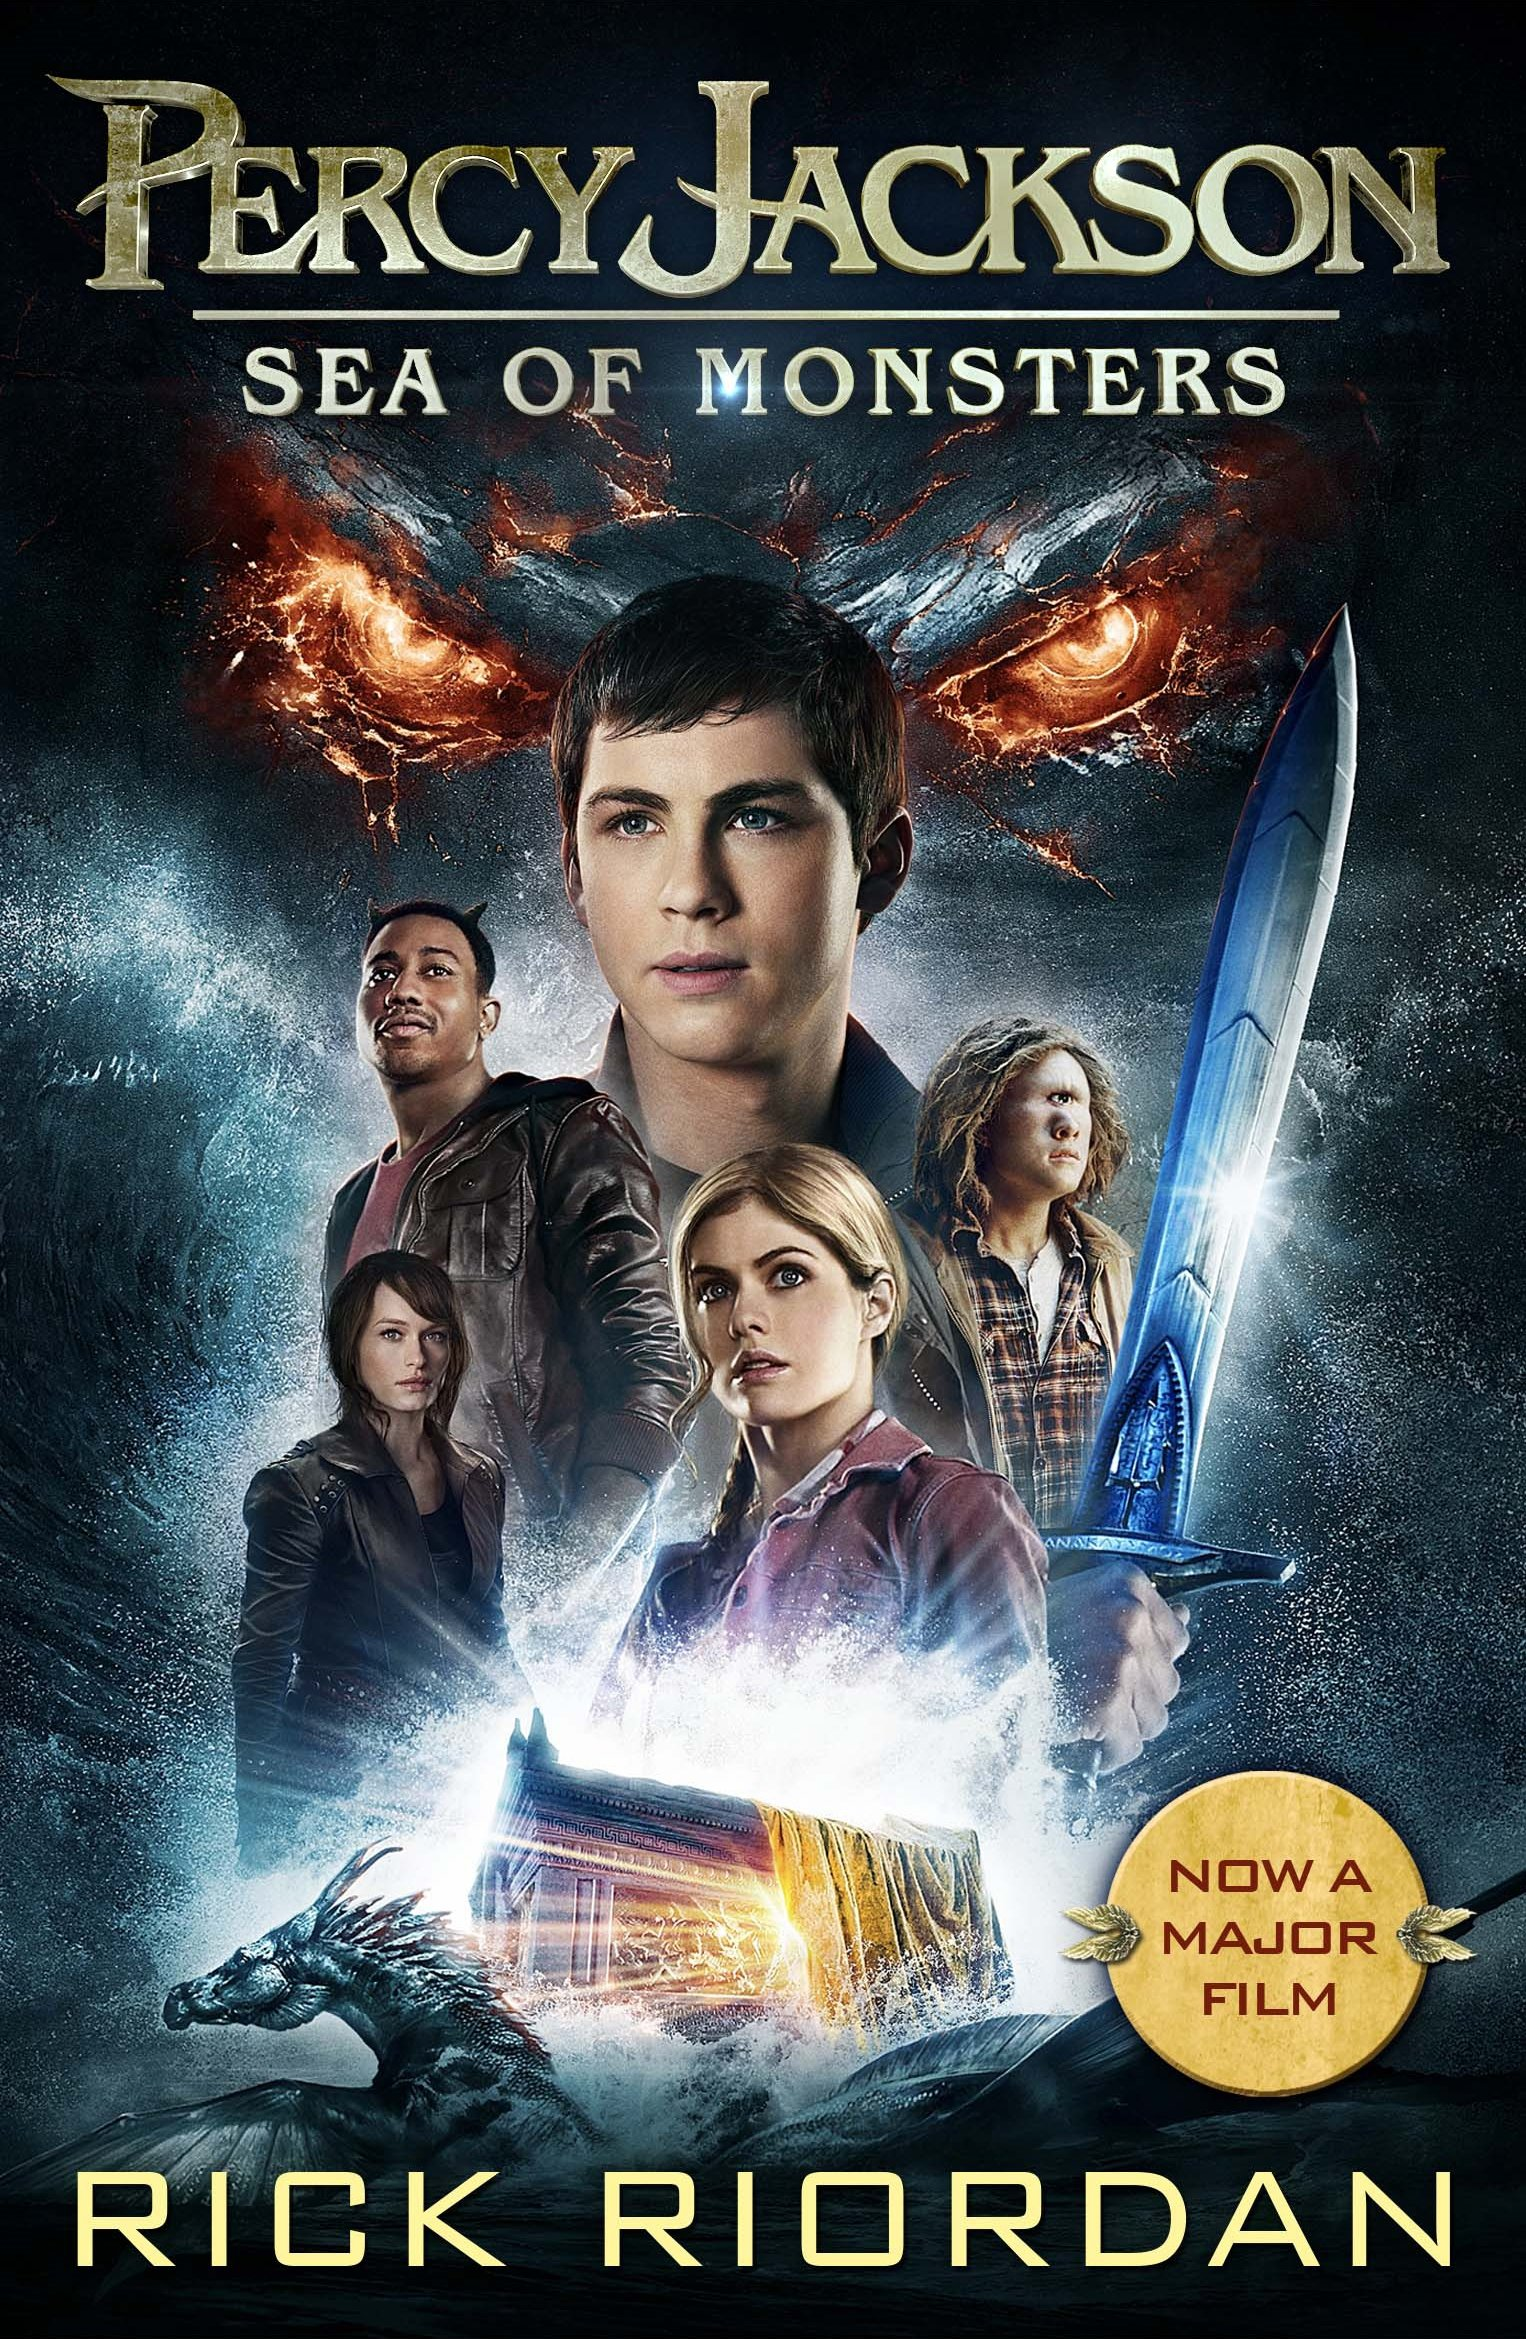 Percy Jackson and the Sea of Monsters (Book 2): Amazon.co.uk: Rick ...